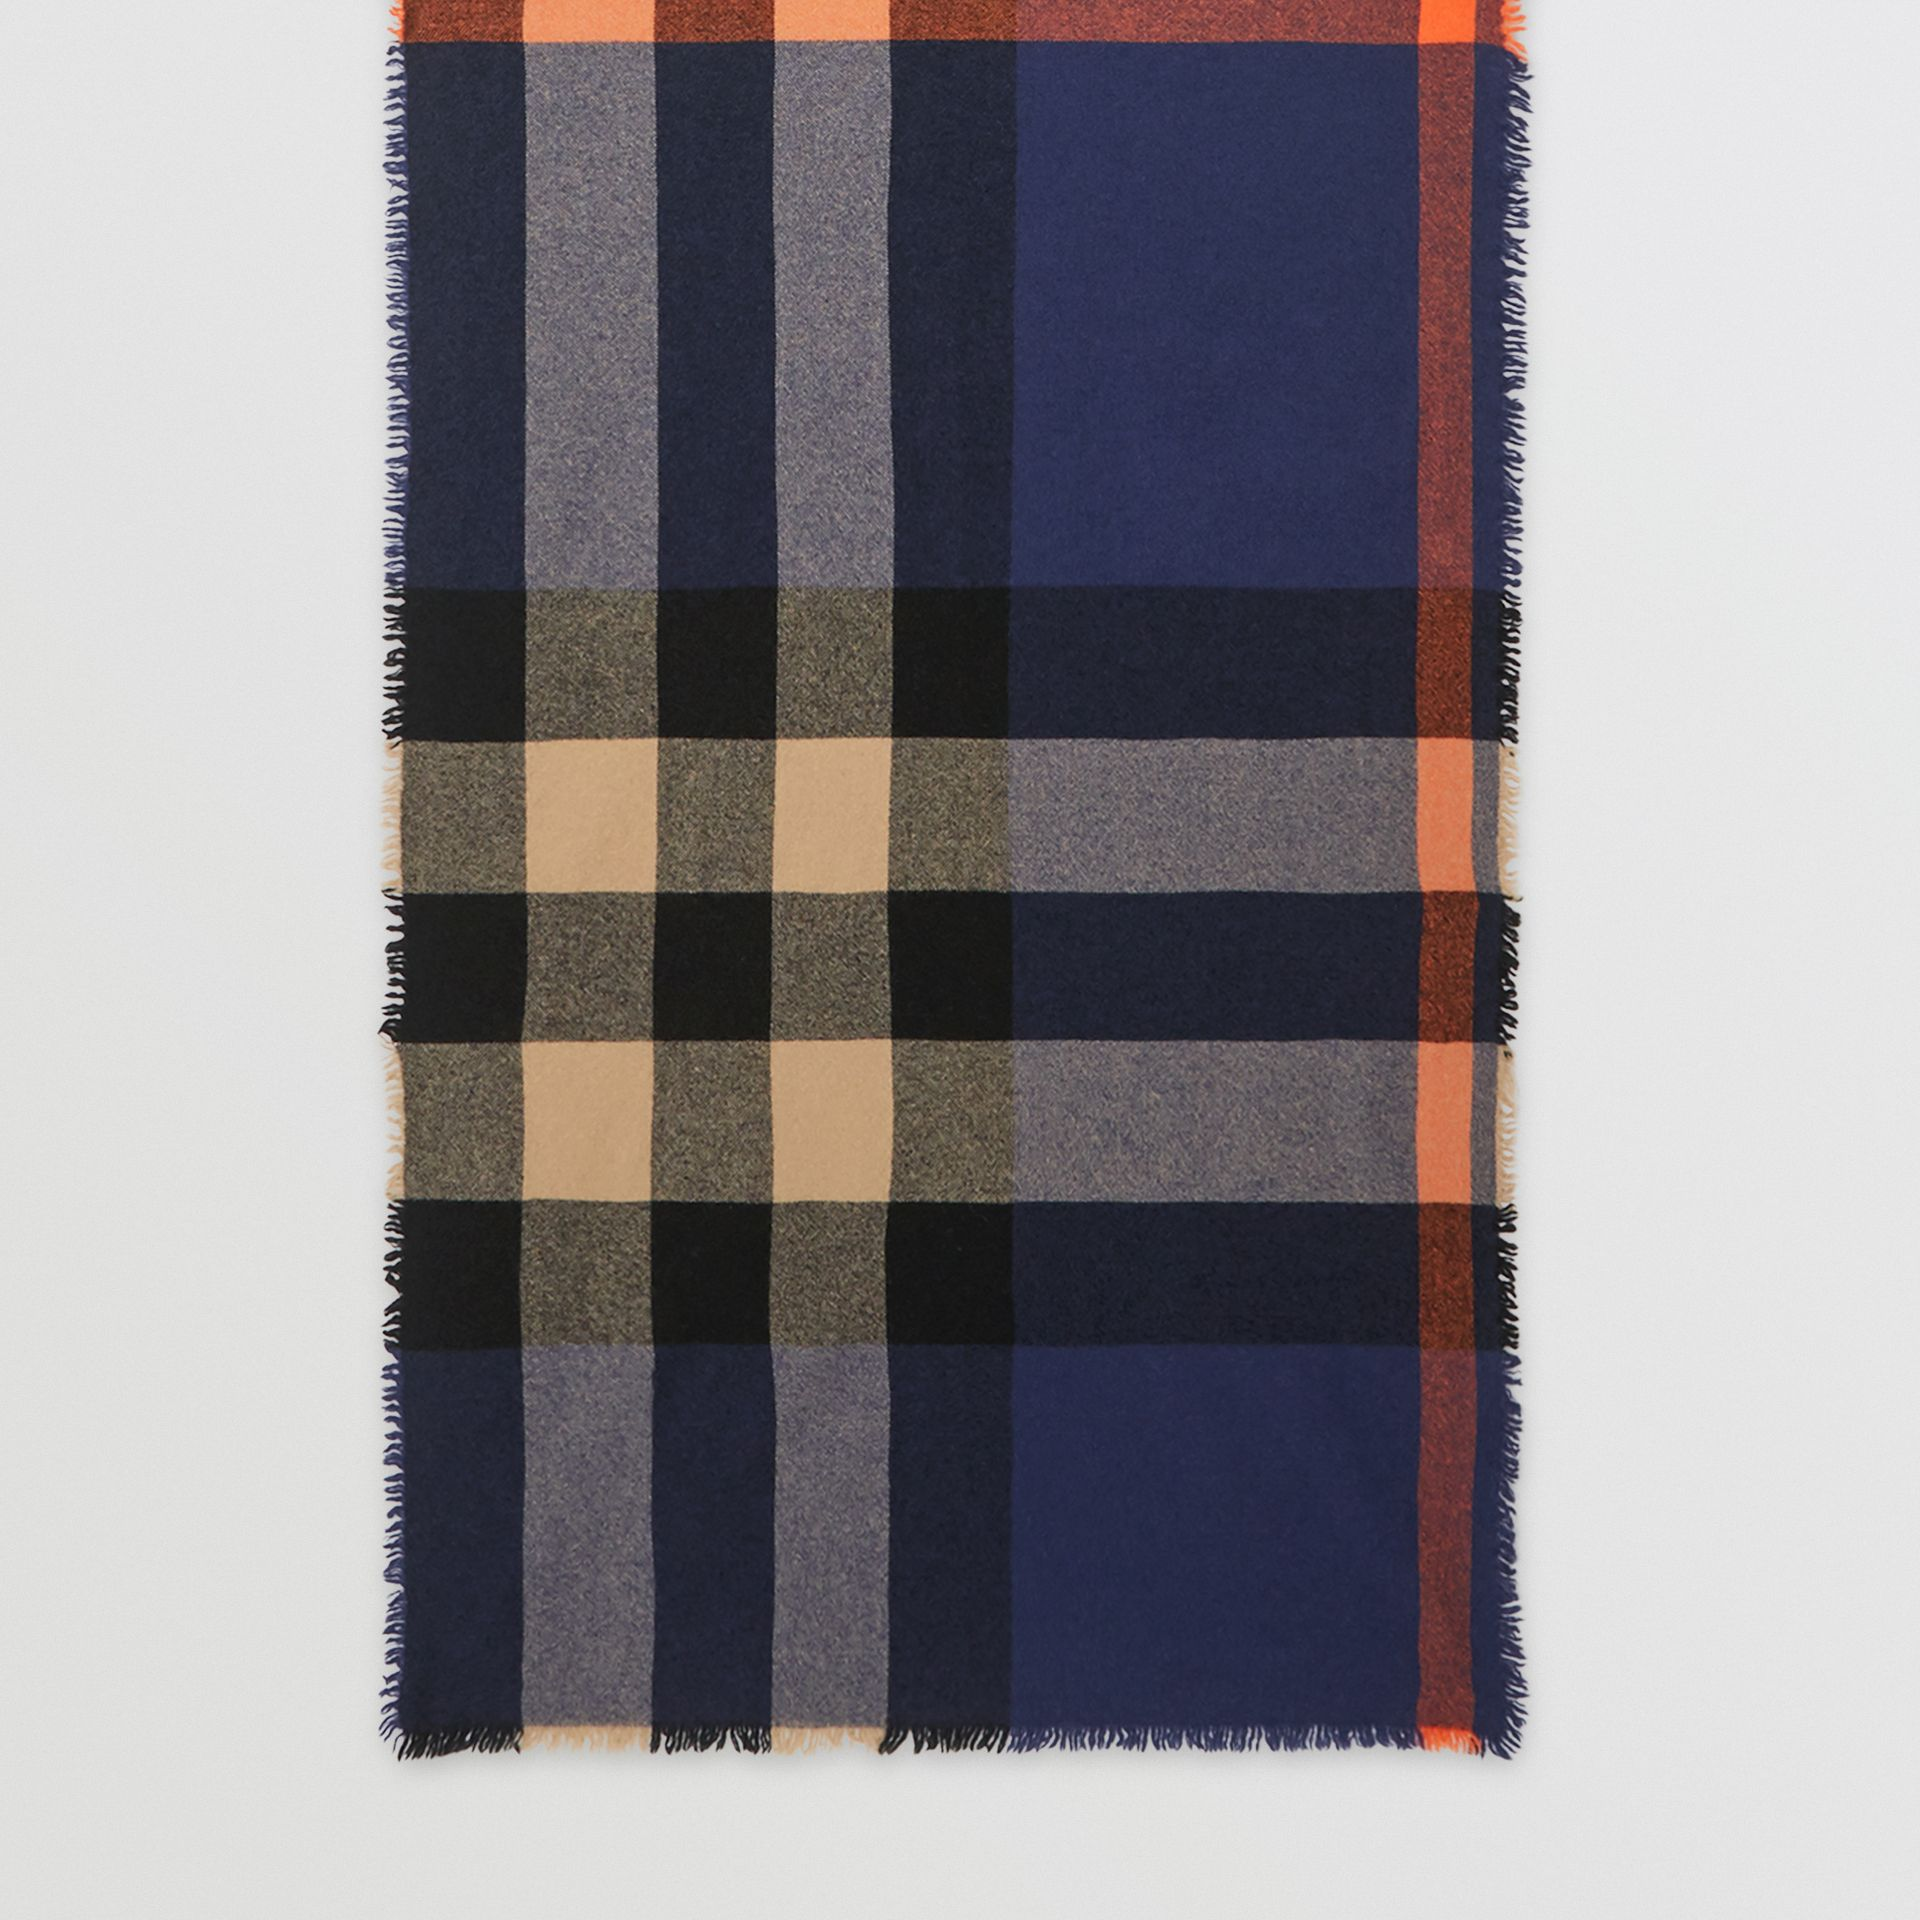 Fringed Check Wool Cashmere Scarf in Ink Blue | Burberry United States - gallery image 4